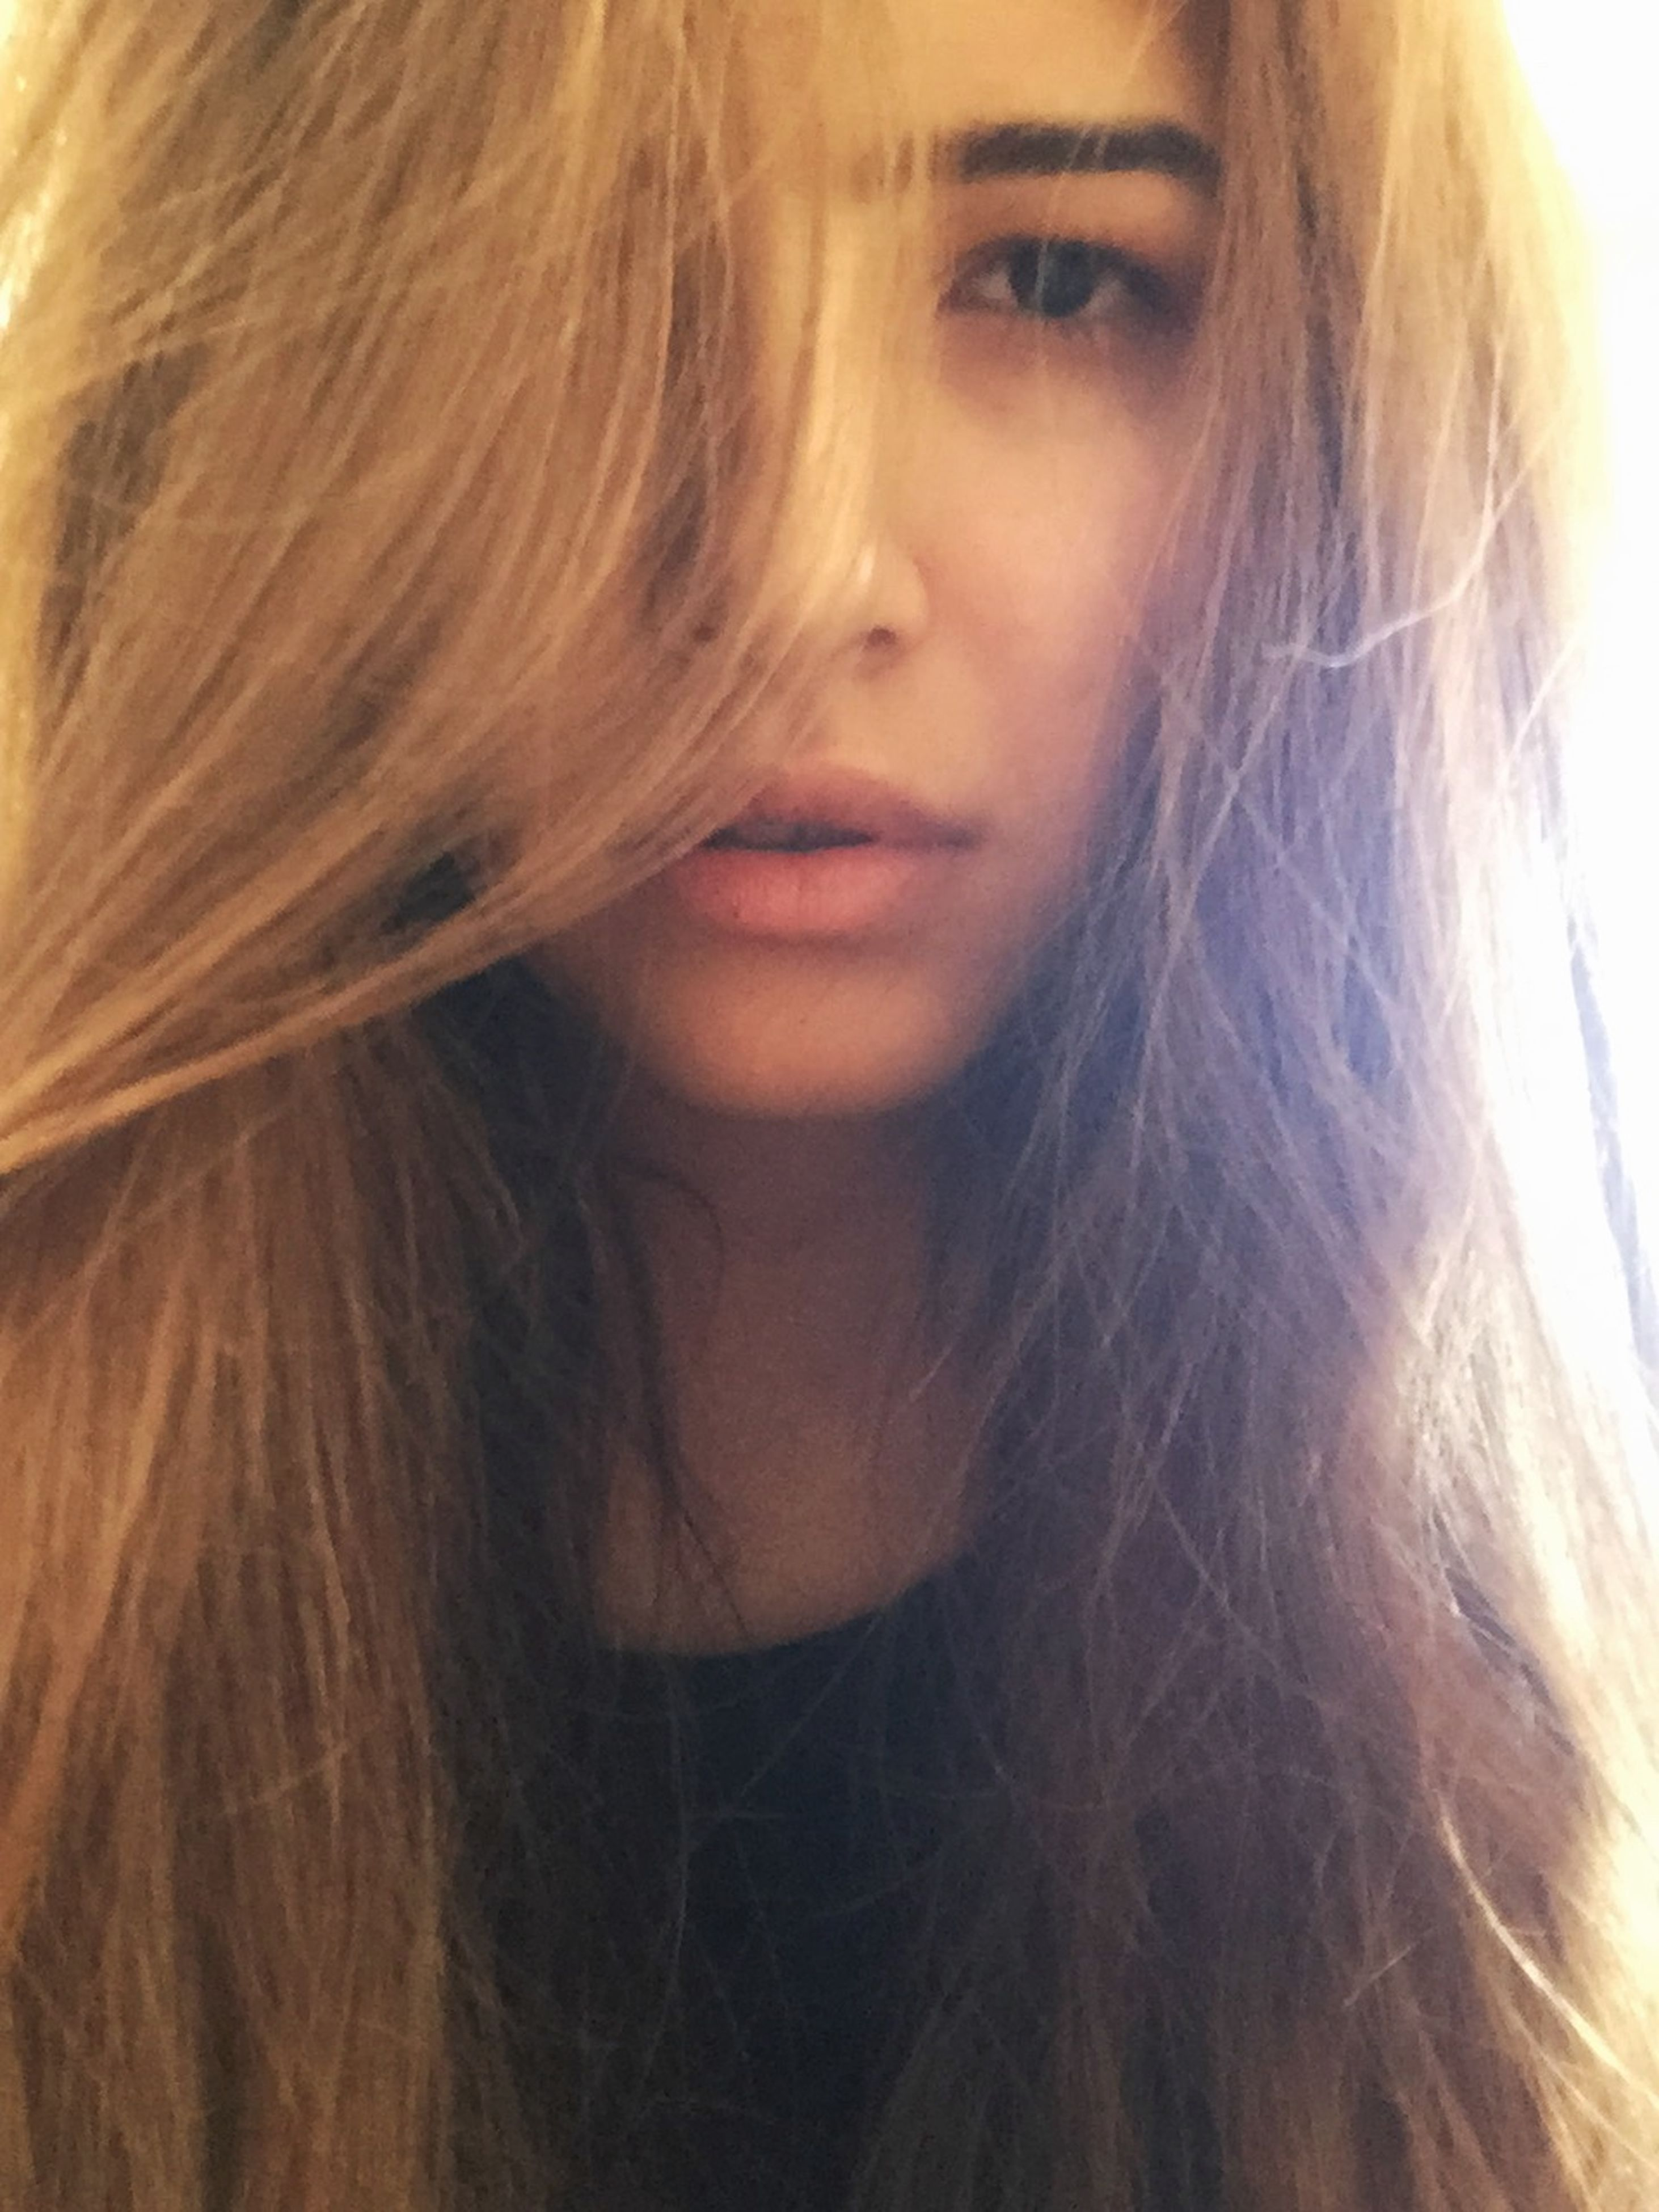 young women, long hair, young adult, person, headshot, lifestyles, leisure activity, brown hair, human hair, looking at camera, close-up, portrait, front view, indoors, blond hair, beauty, medium-length hair